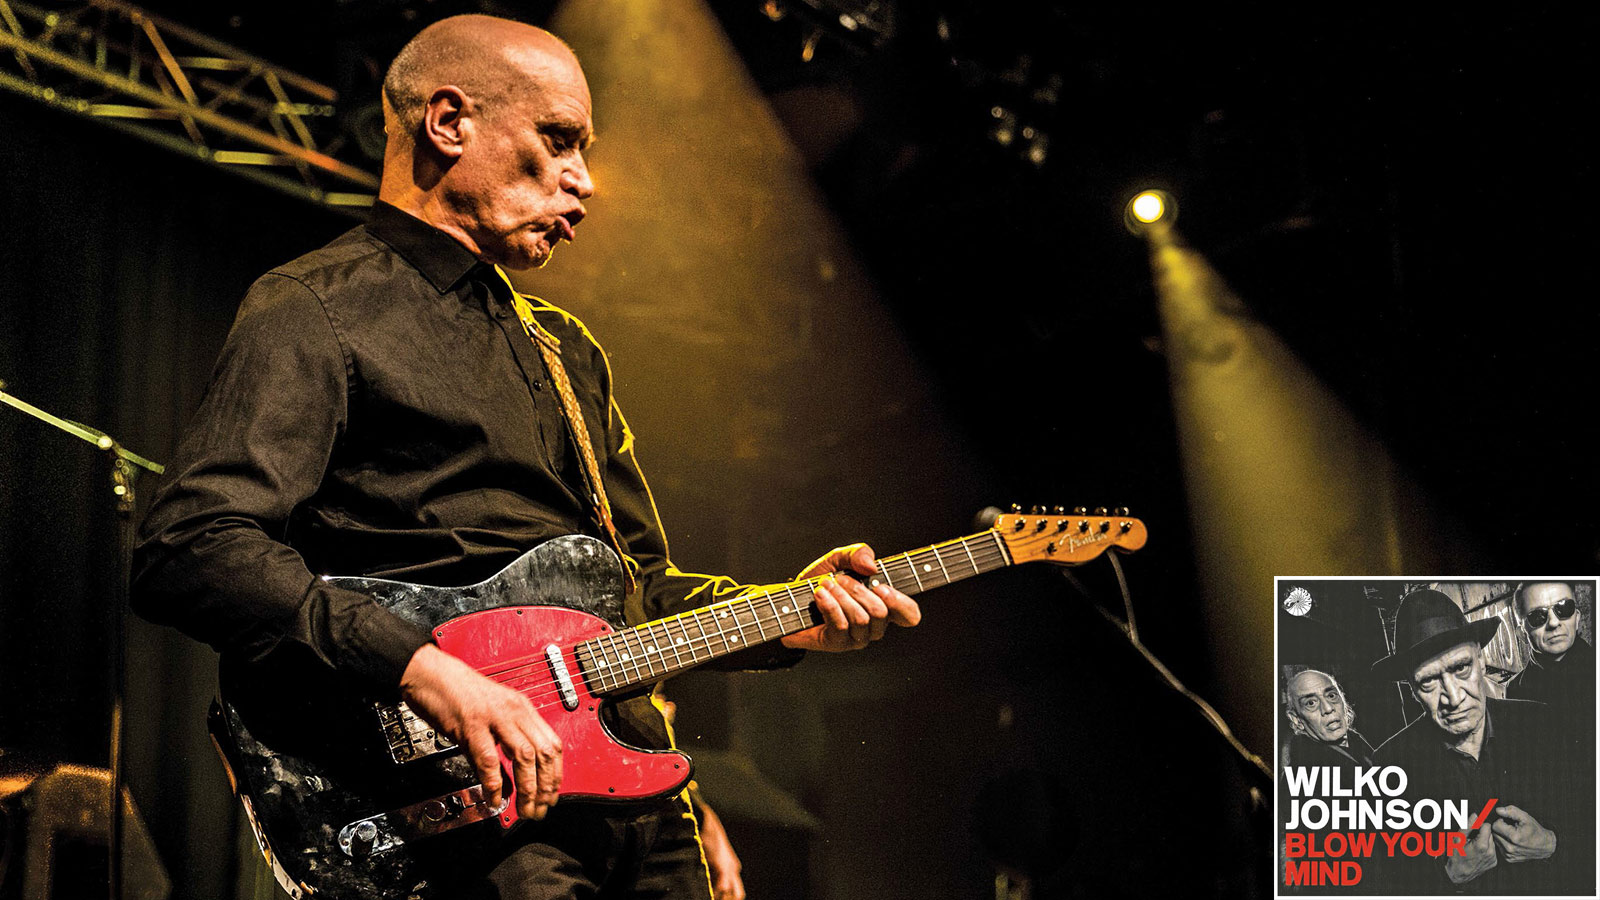 Tele-Meister Wilko Johnson Is Ready, Willing and Able to 'Blow Your Mind'